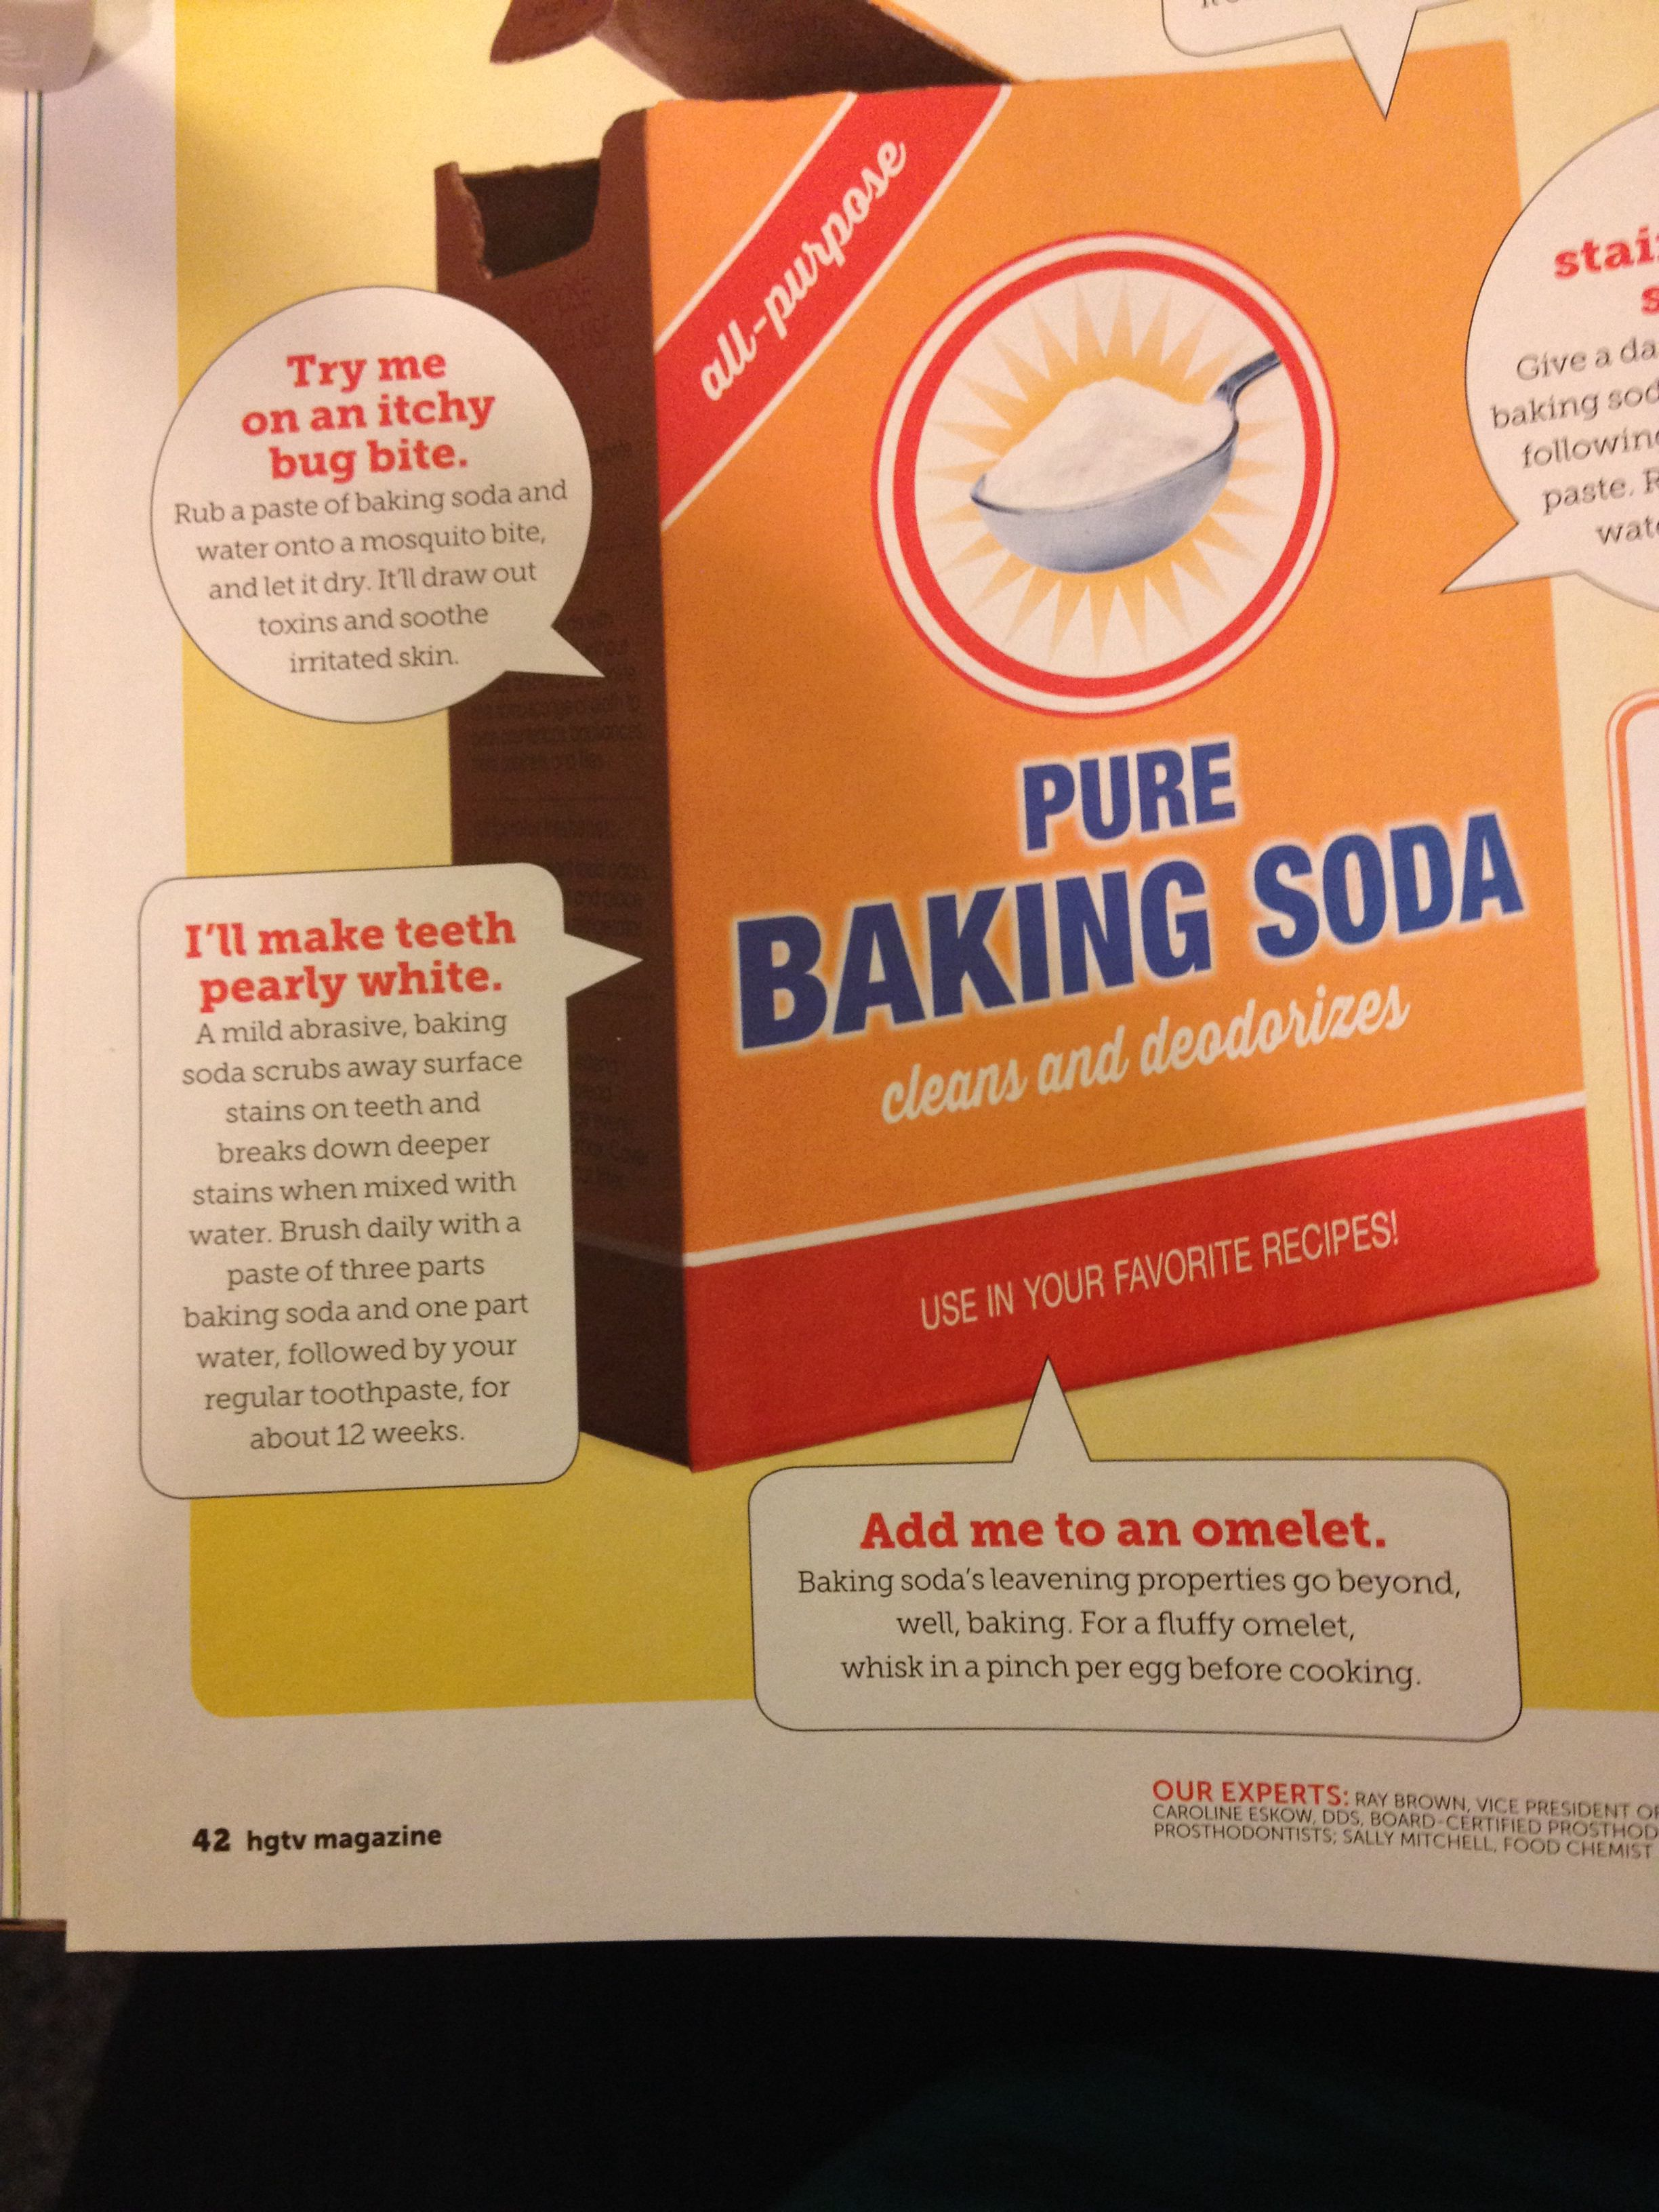 baking soda paste to whiten teeth stop bug bites from itching and